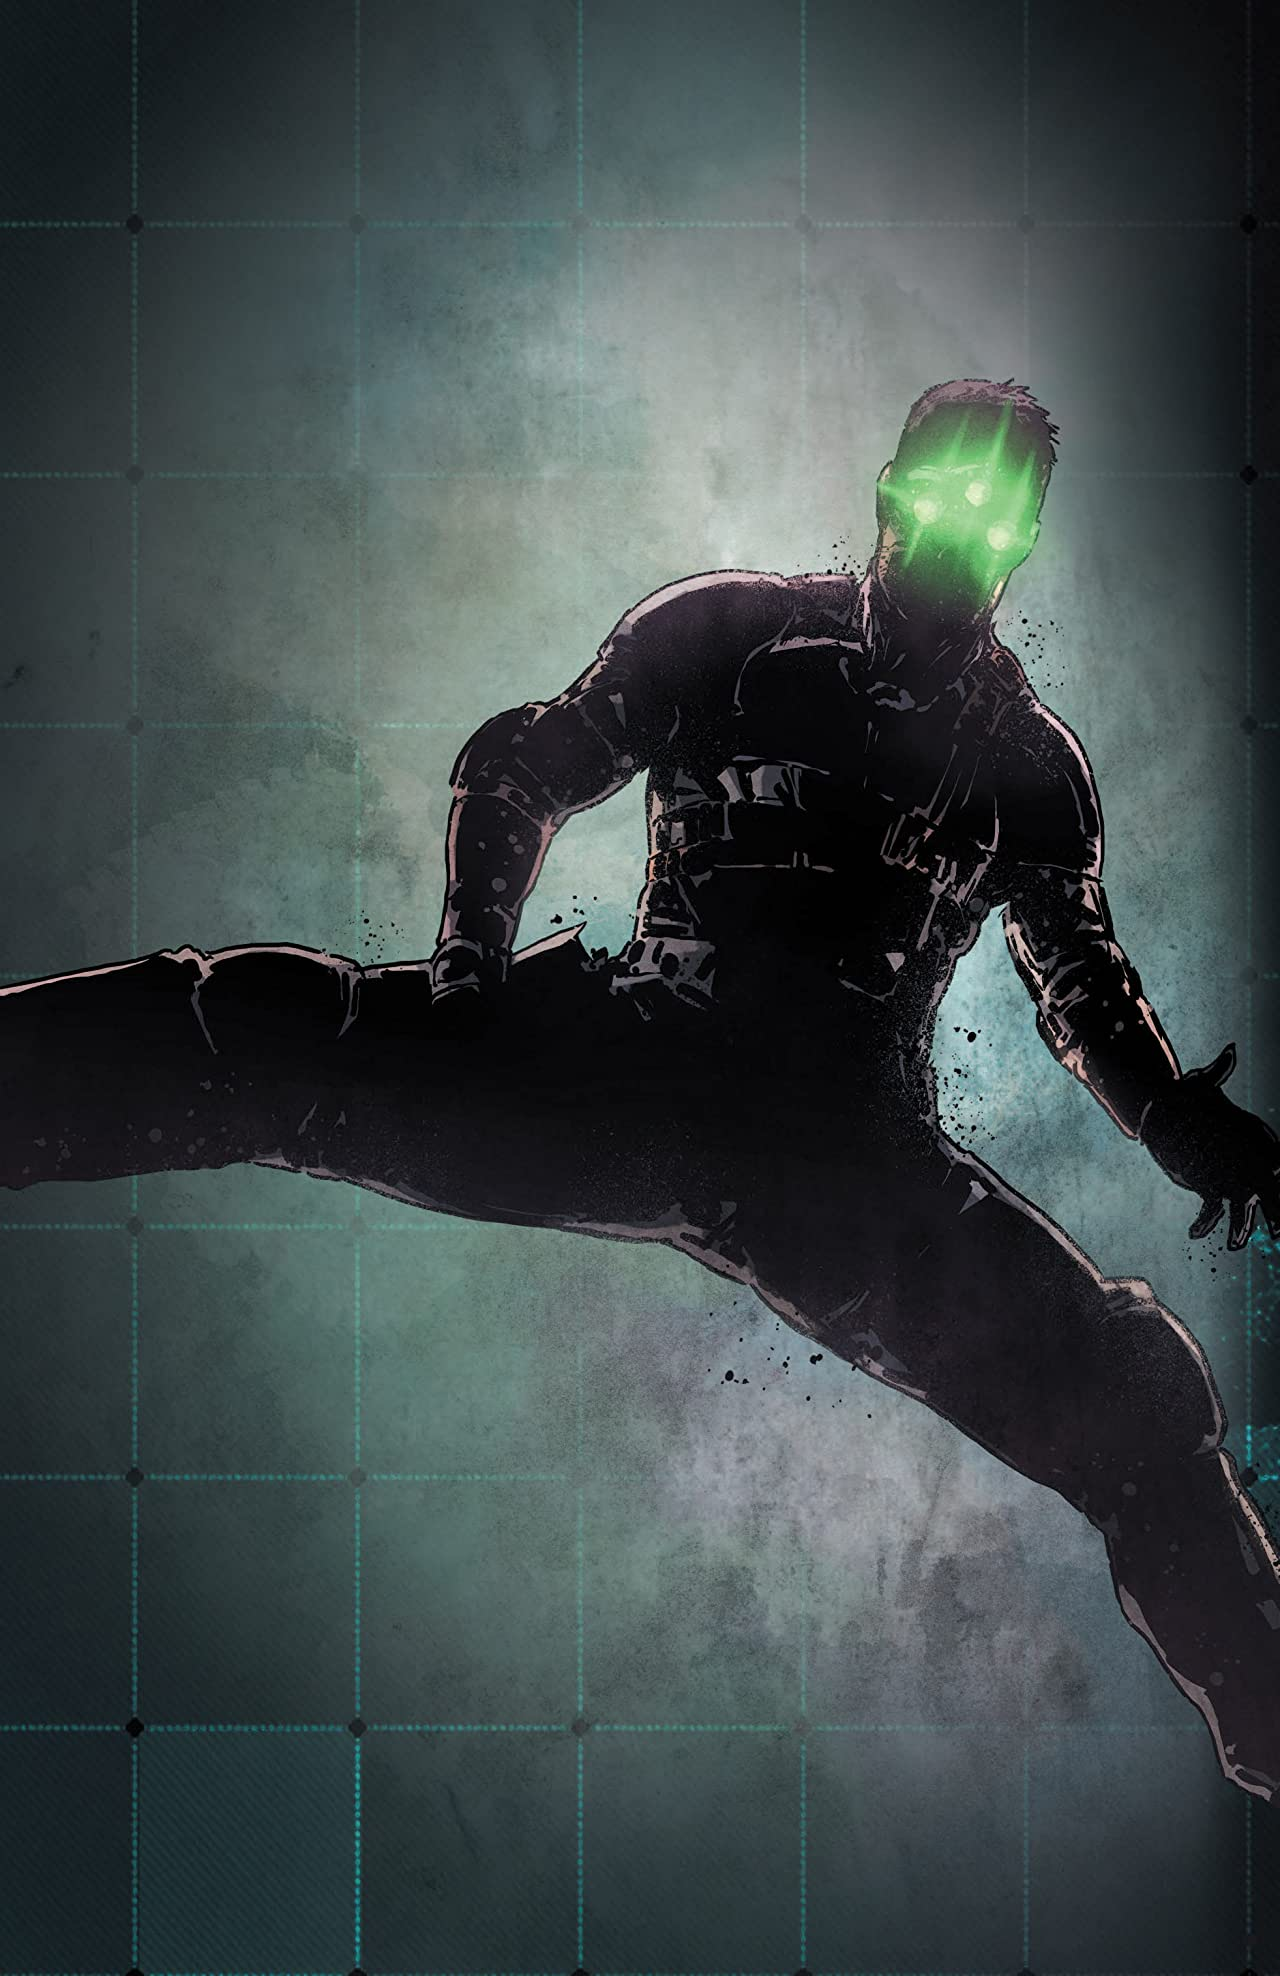 Tom Clancy's Splinter Cell: Echoes